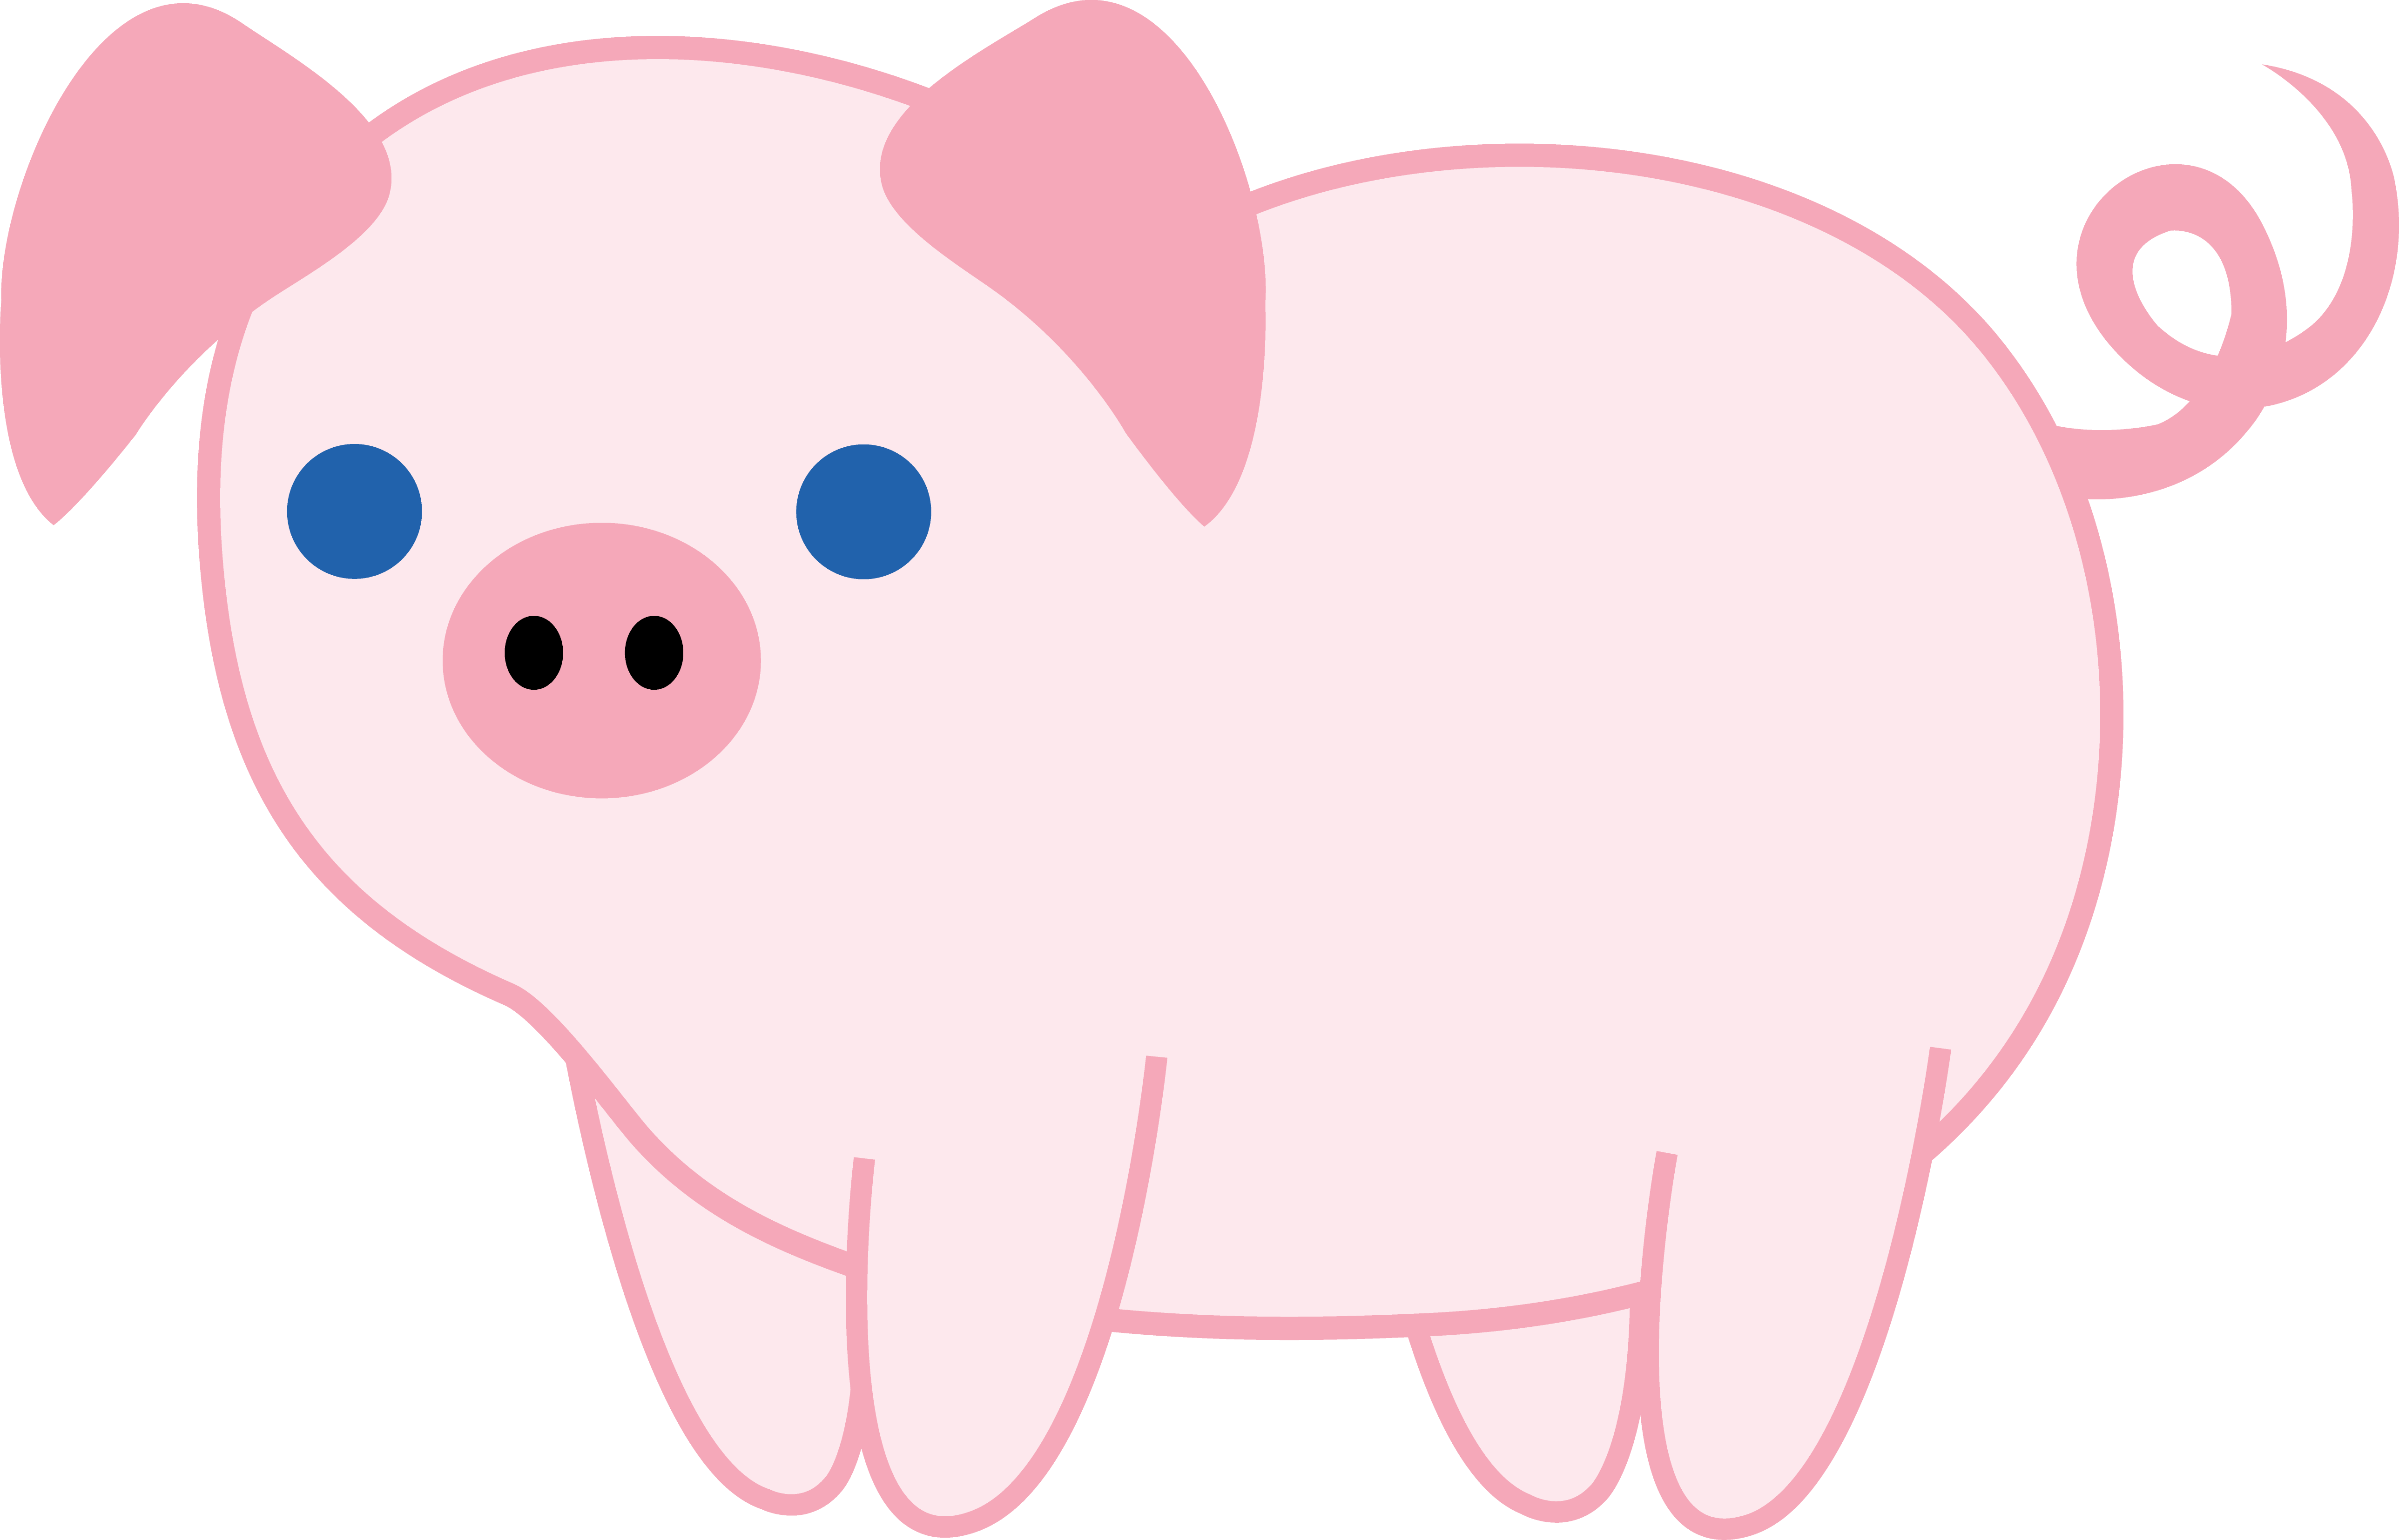 Cute things that are pink clipart png transparent stock Cute Pink Piglet - Cute Things That Are Pink Clipart - Full Size ... png transparent stock